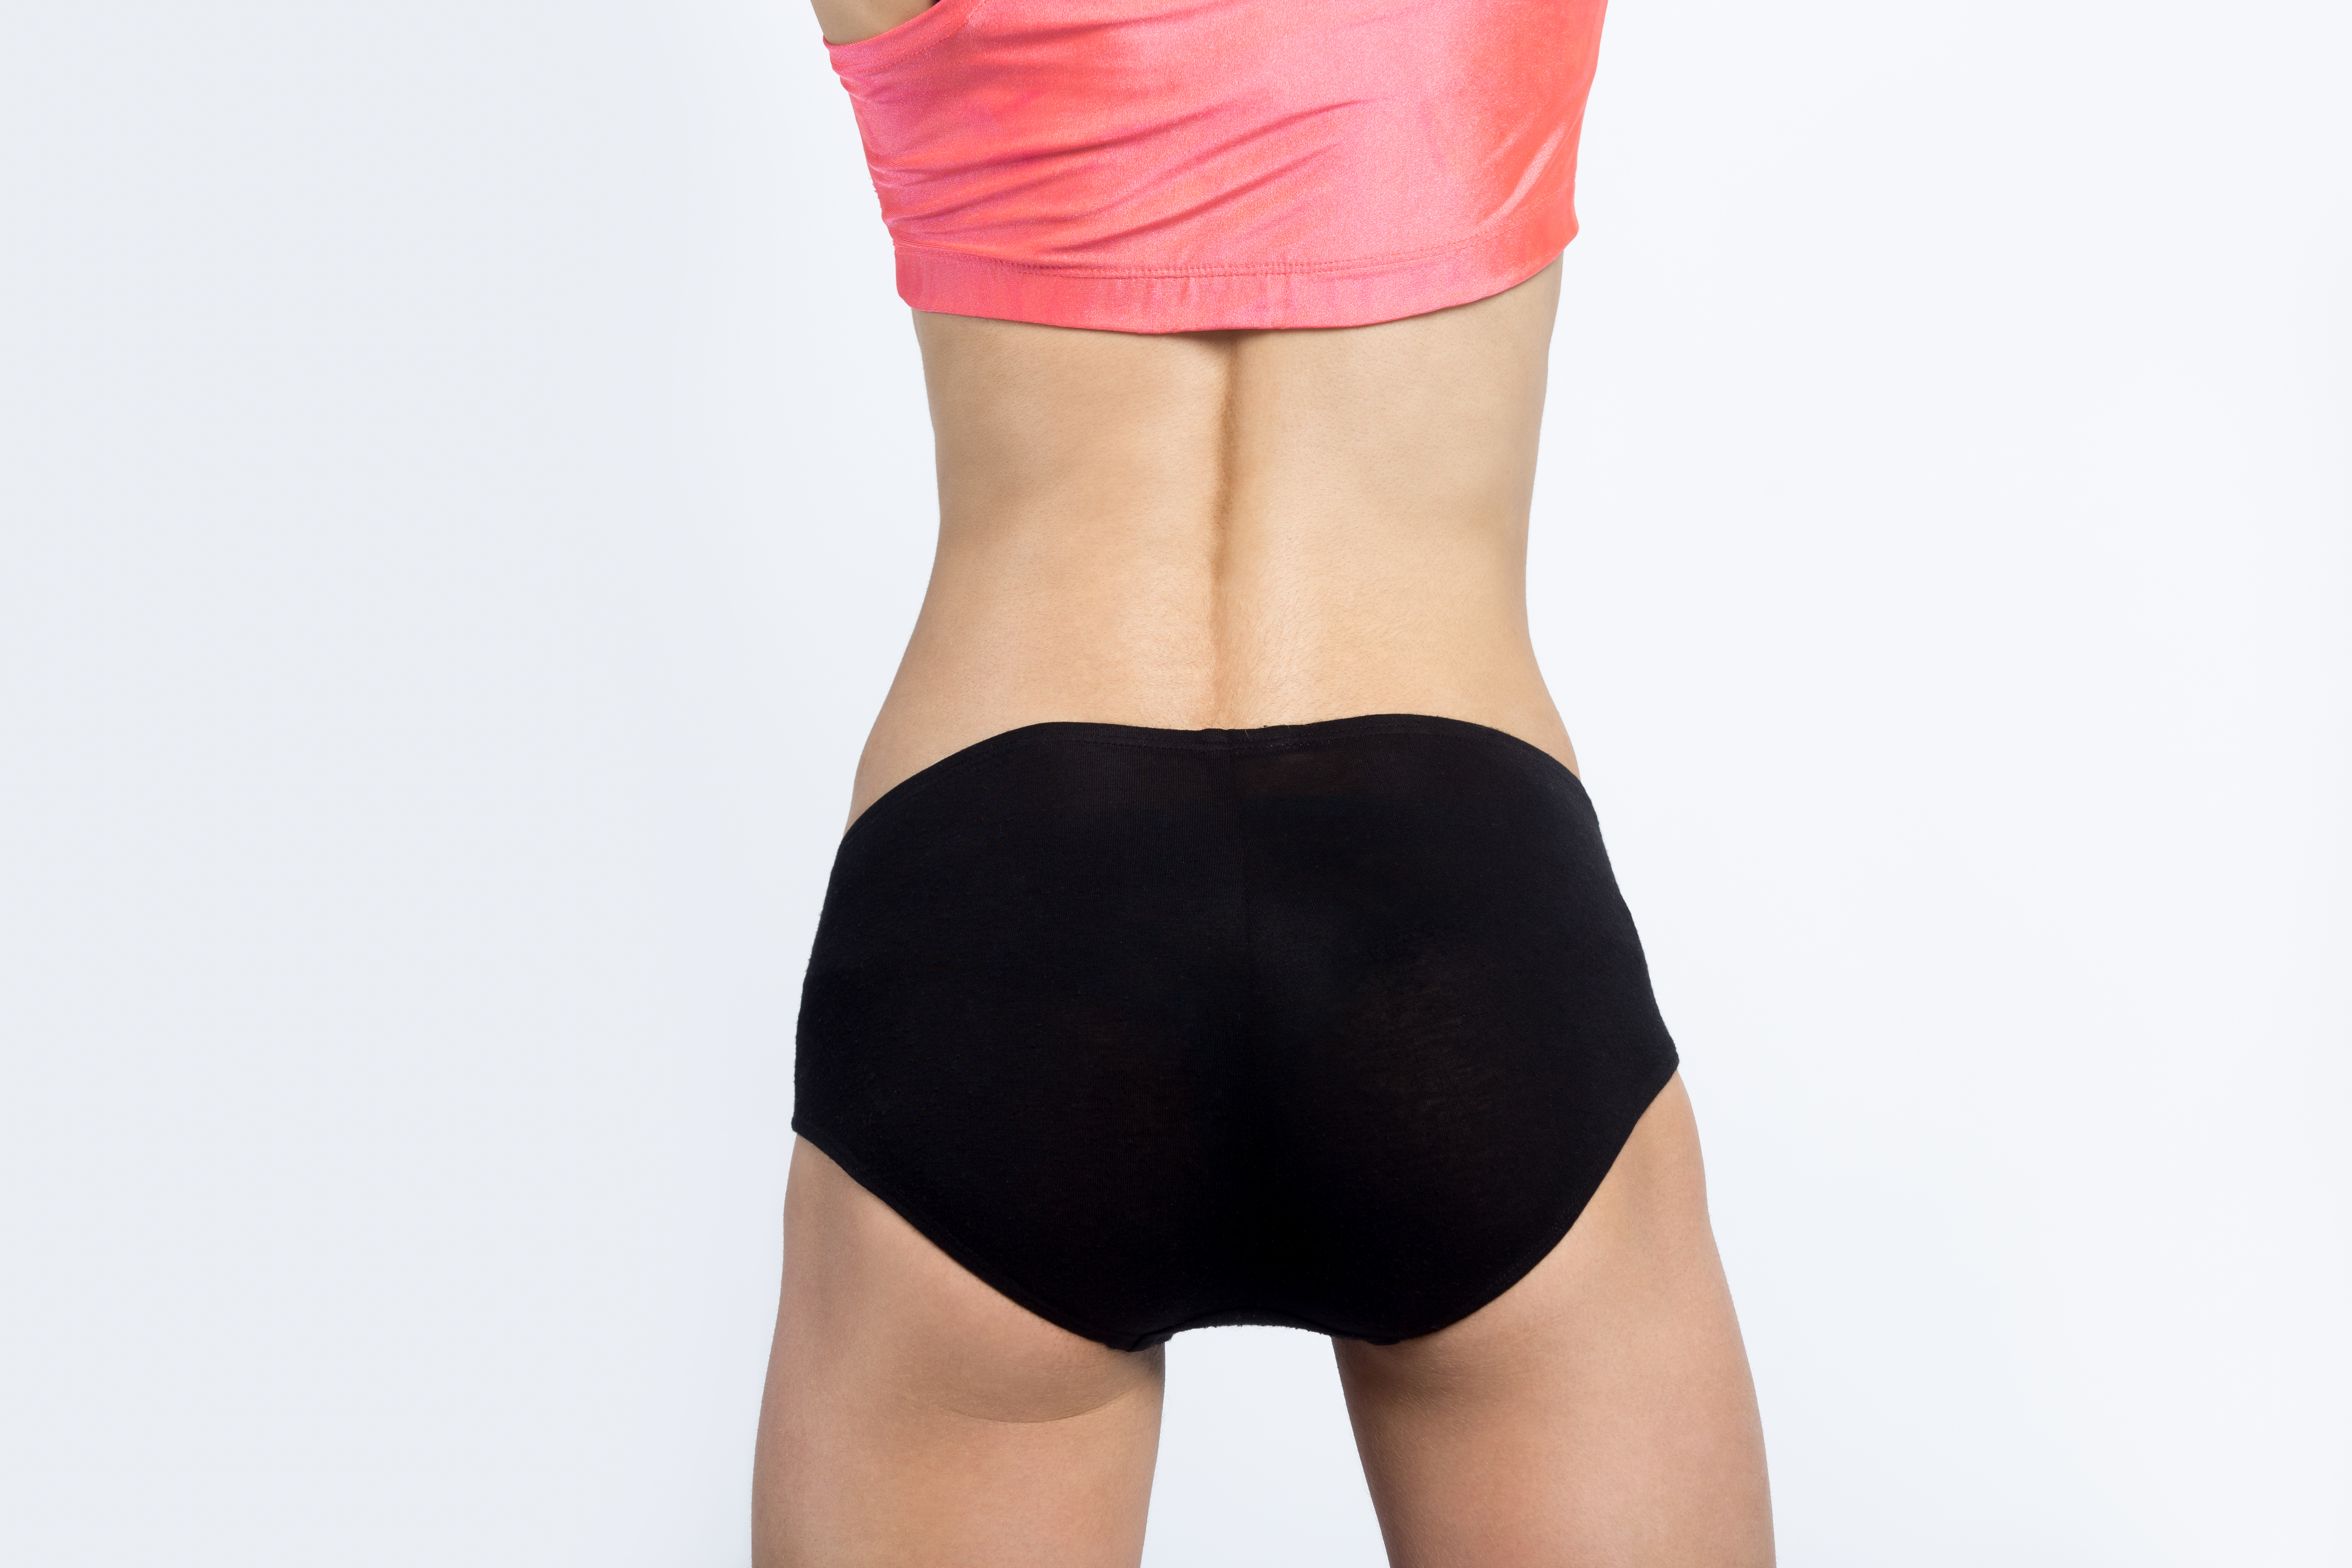 best workout for cellulite, woman showing off slim torso from behind